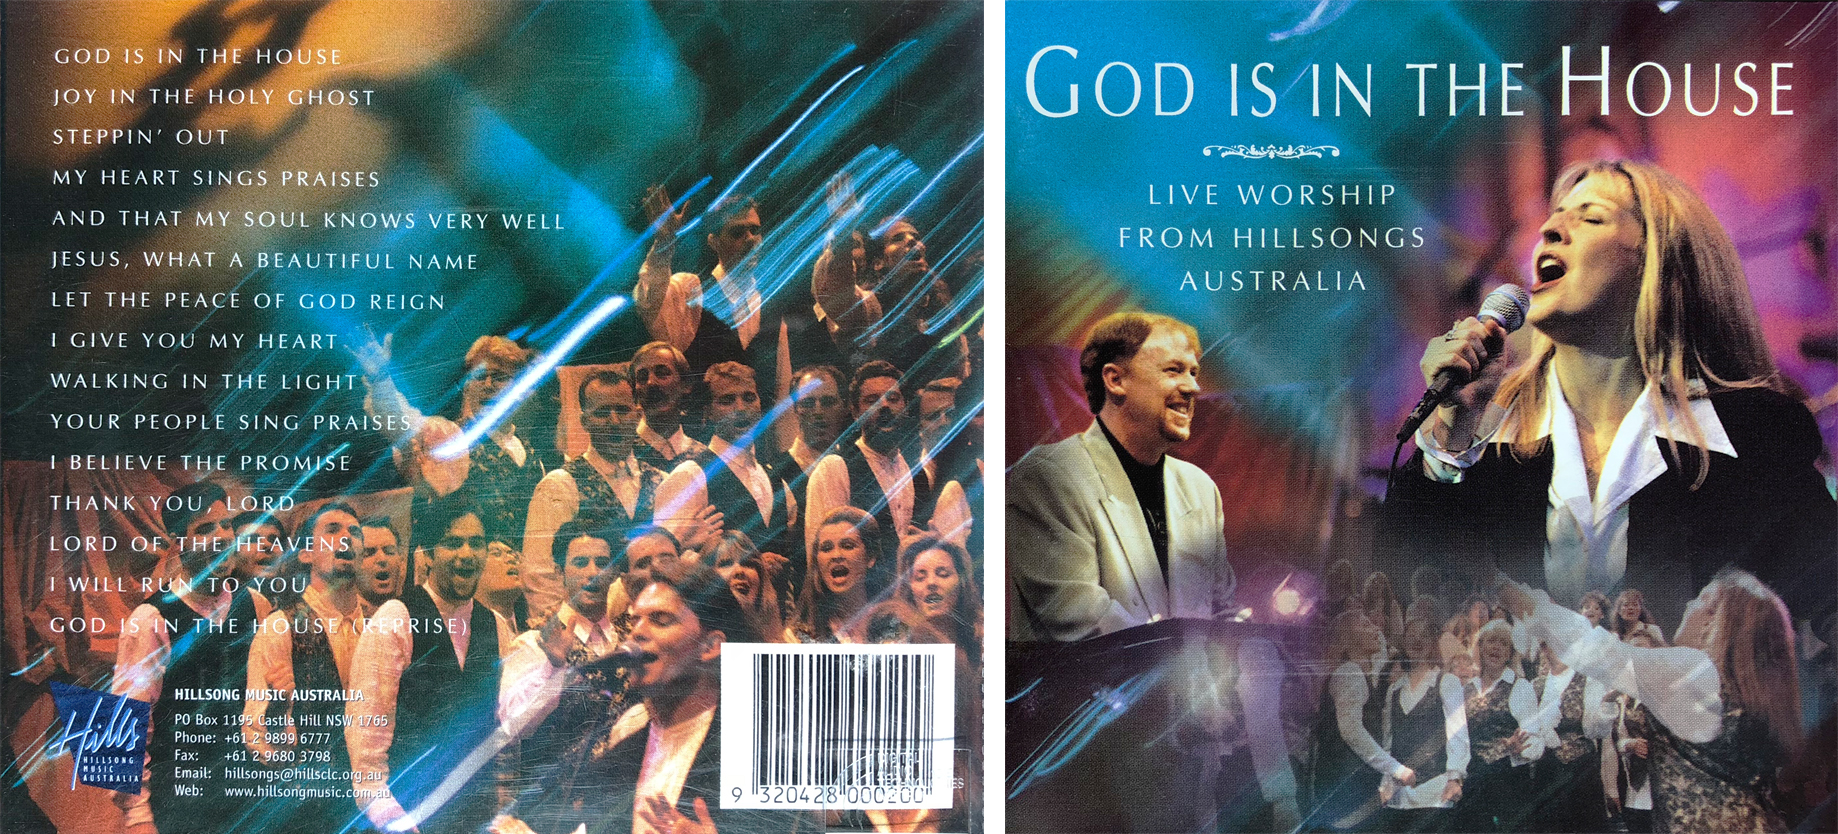 """God Is In The House"" broke new ground by featuring photos of worship leaders and the choir on the artwork (1996)."